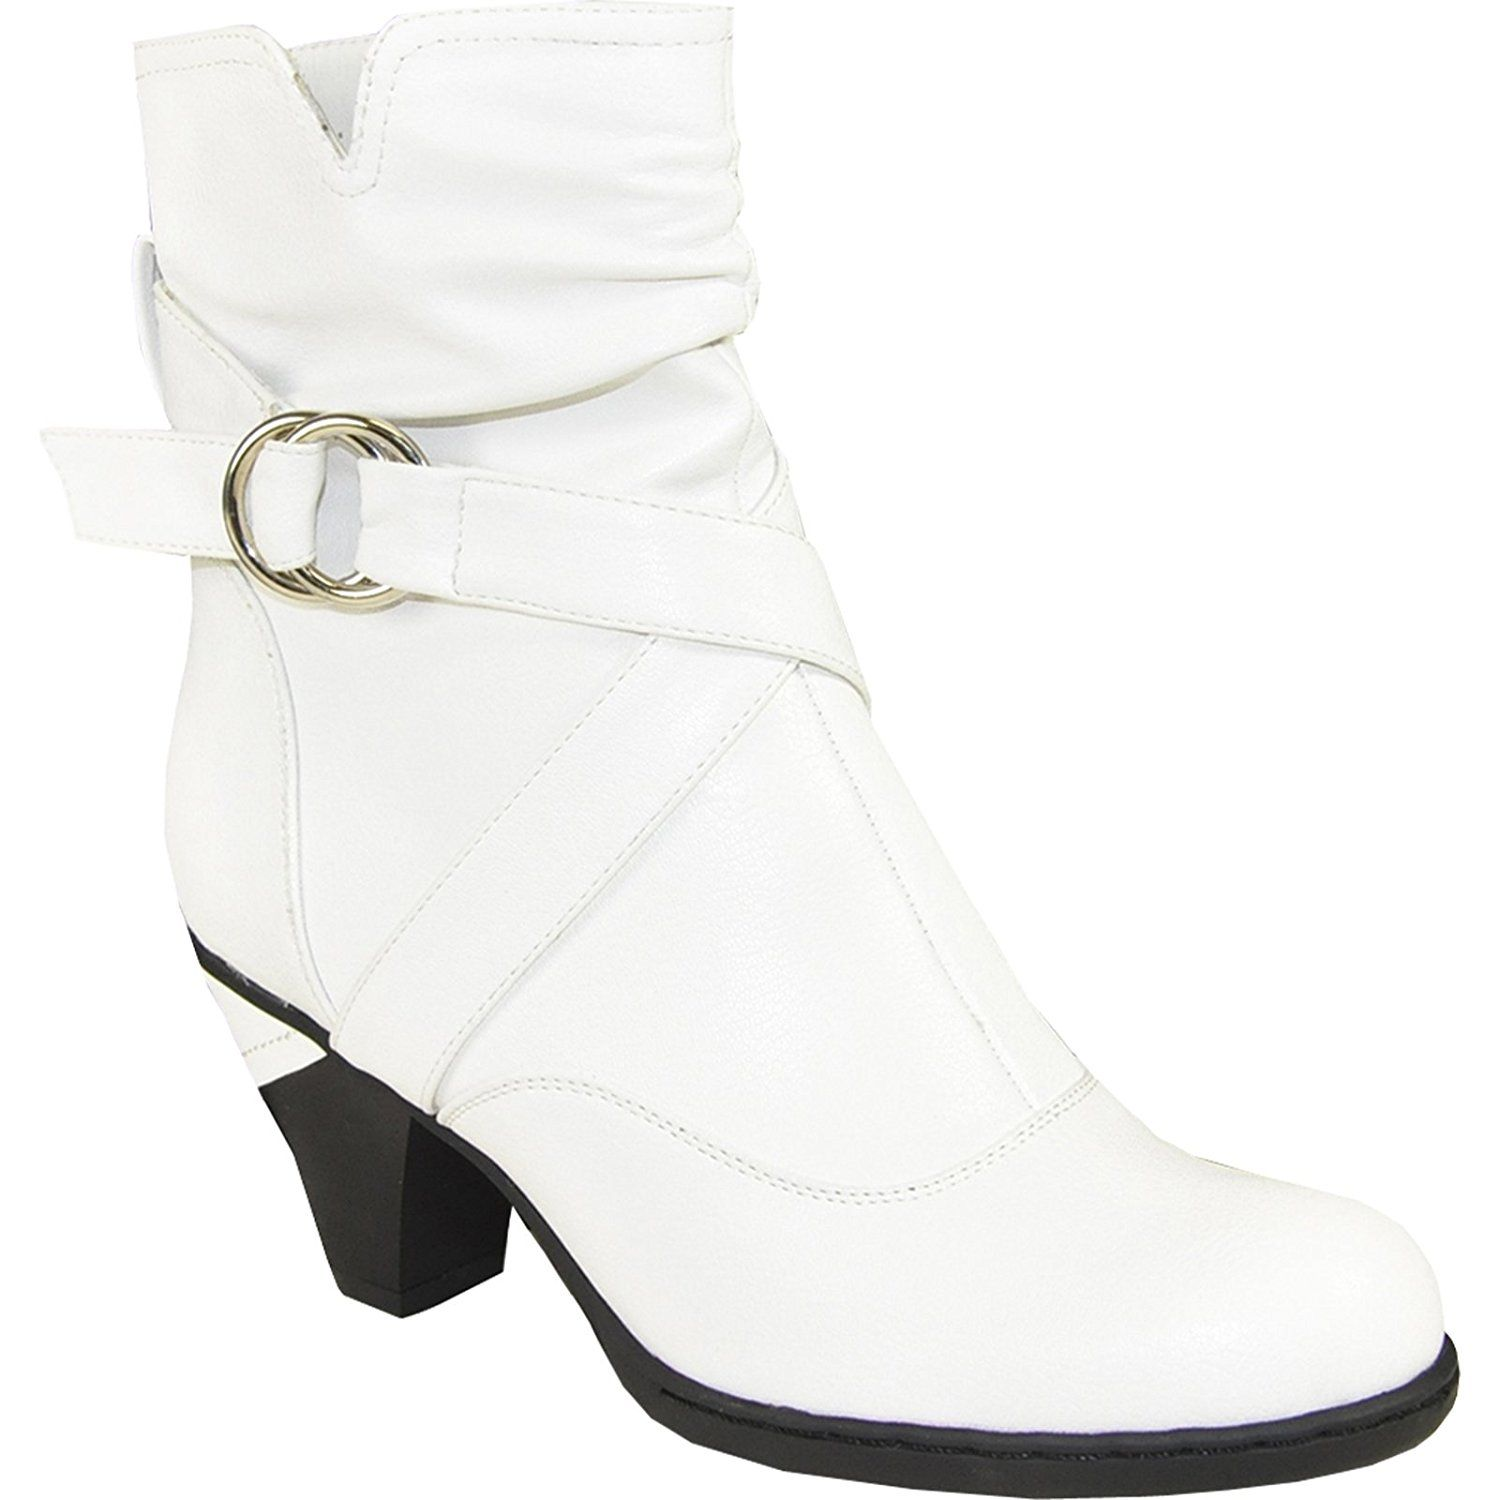 Women's Ankle Boots SD3407 Dress Bootie with Buckle Strap